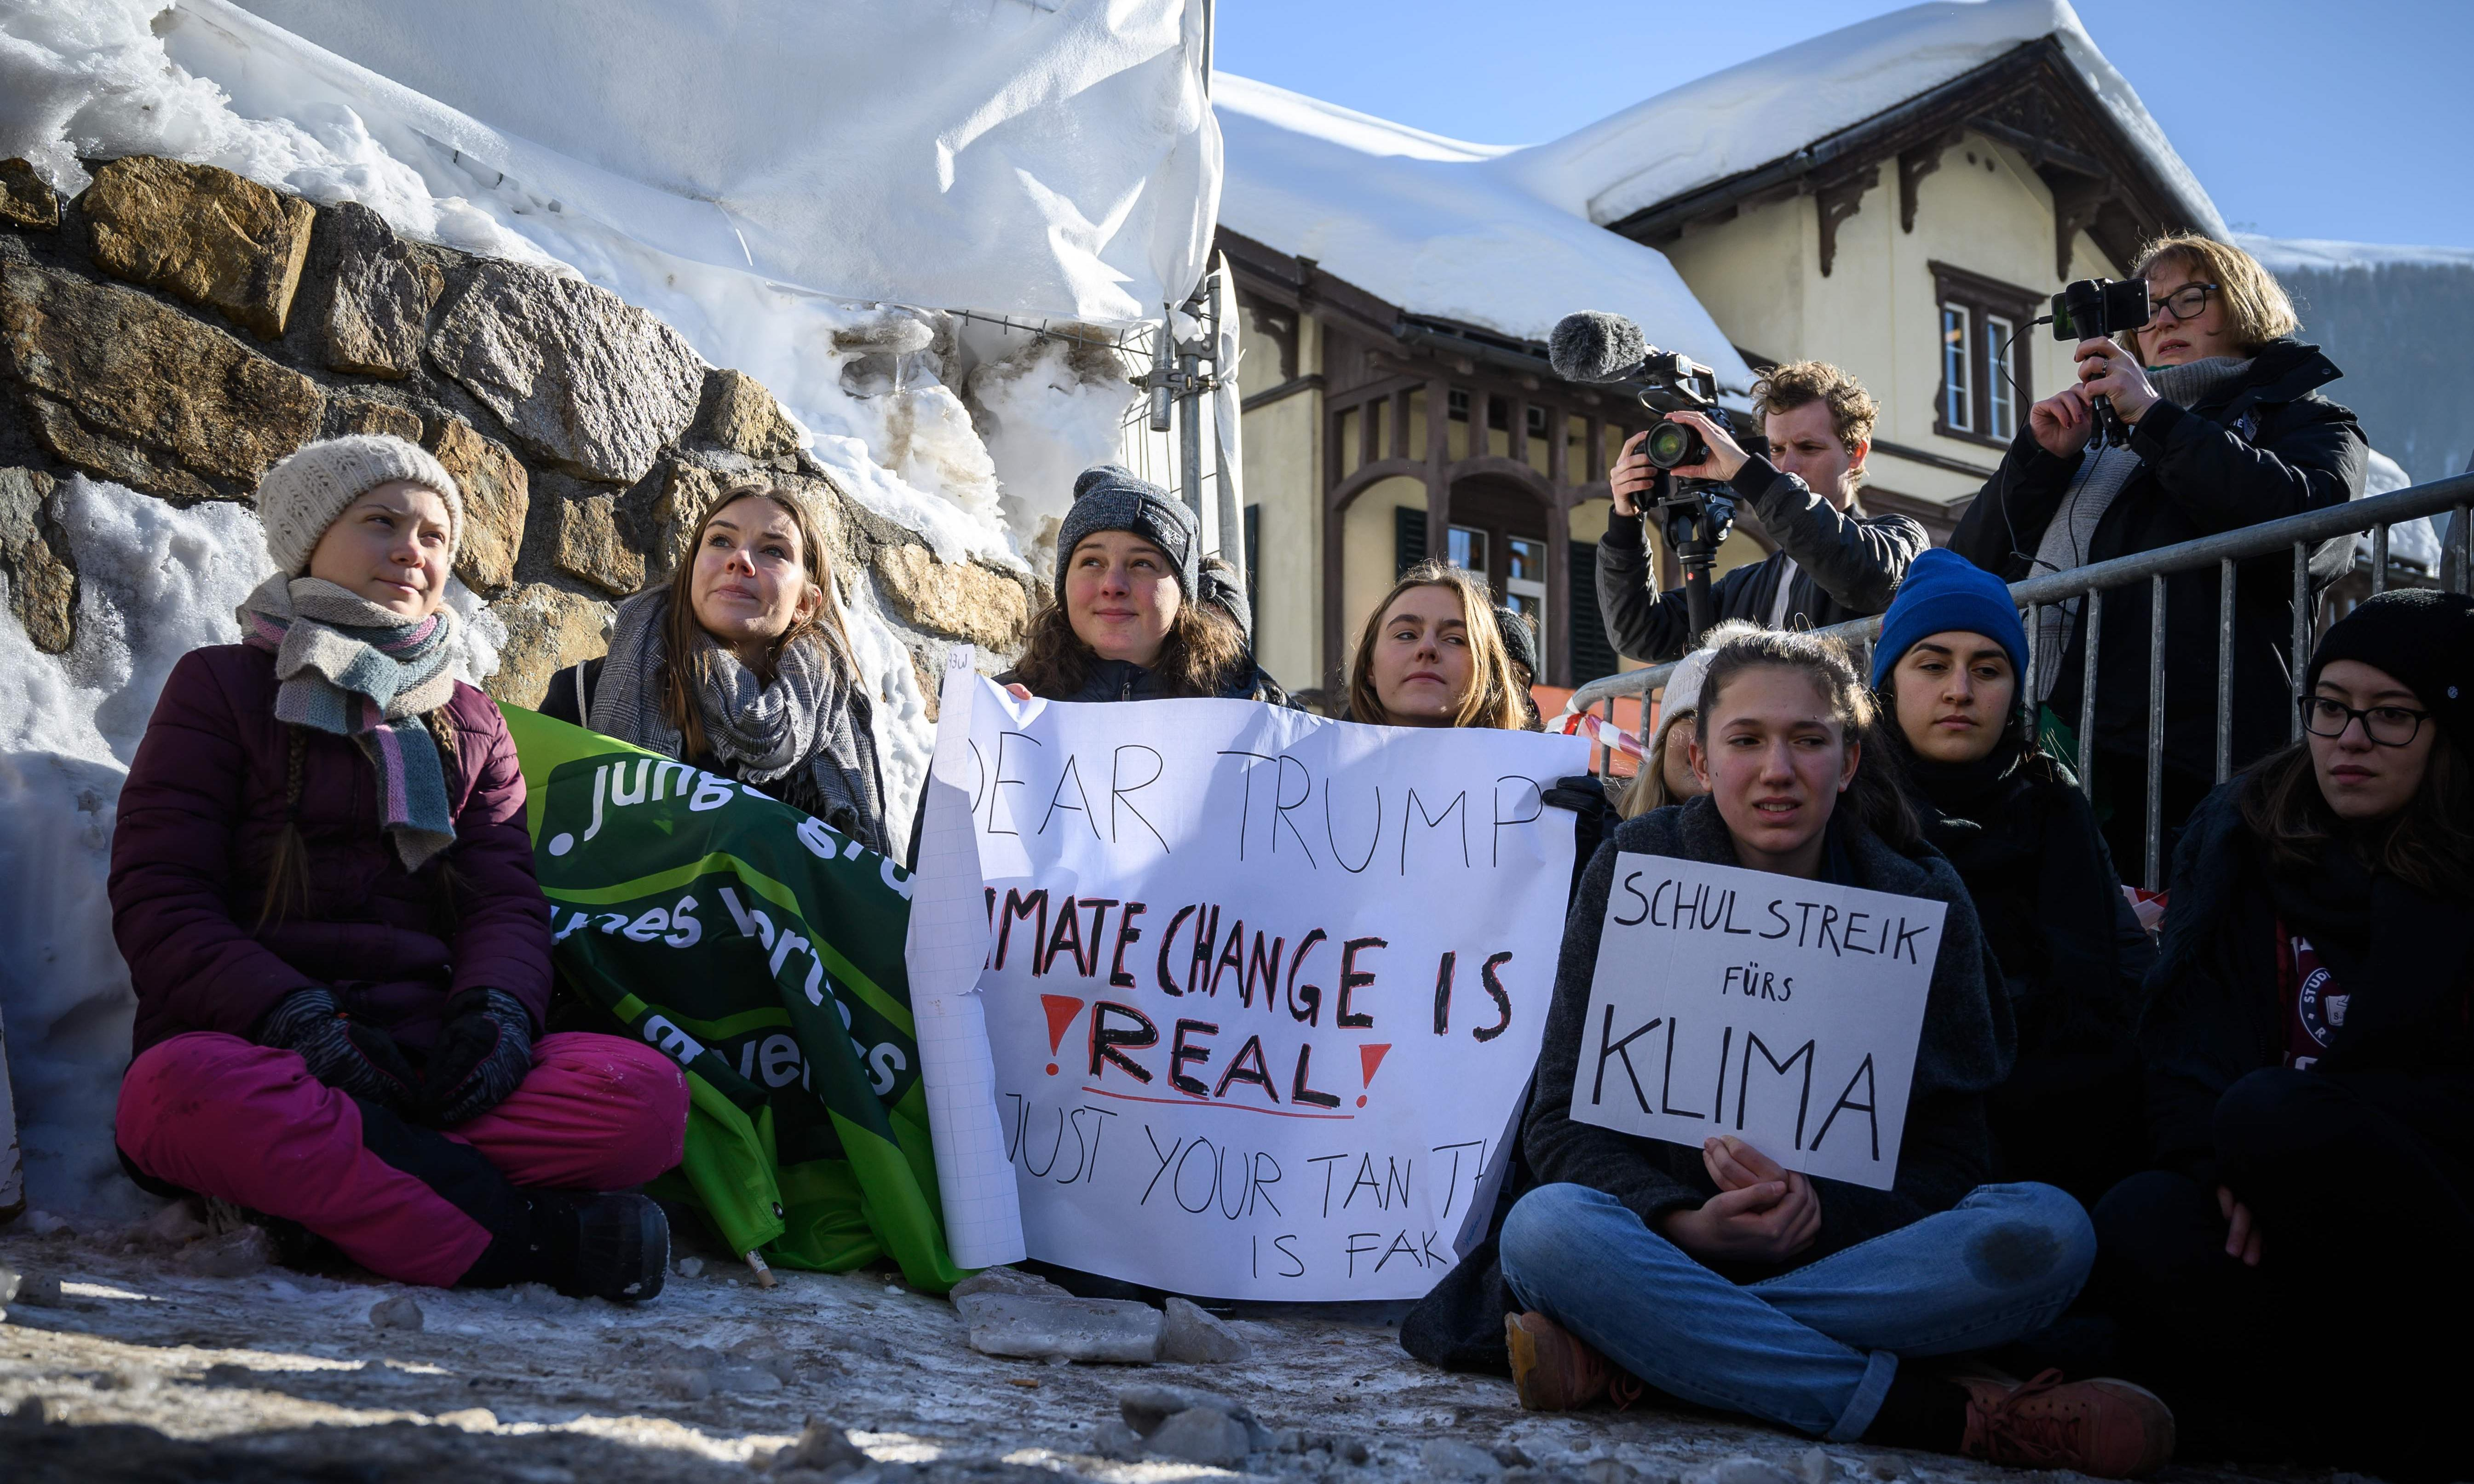 'Our house is on fire': Greta Thunberg, 16, urges leaders to act on climate